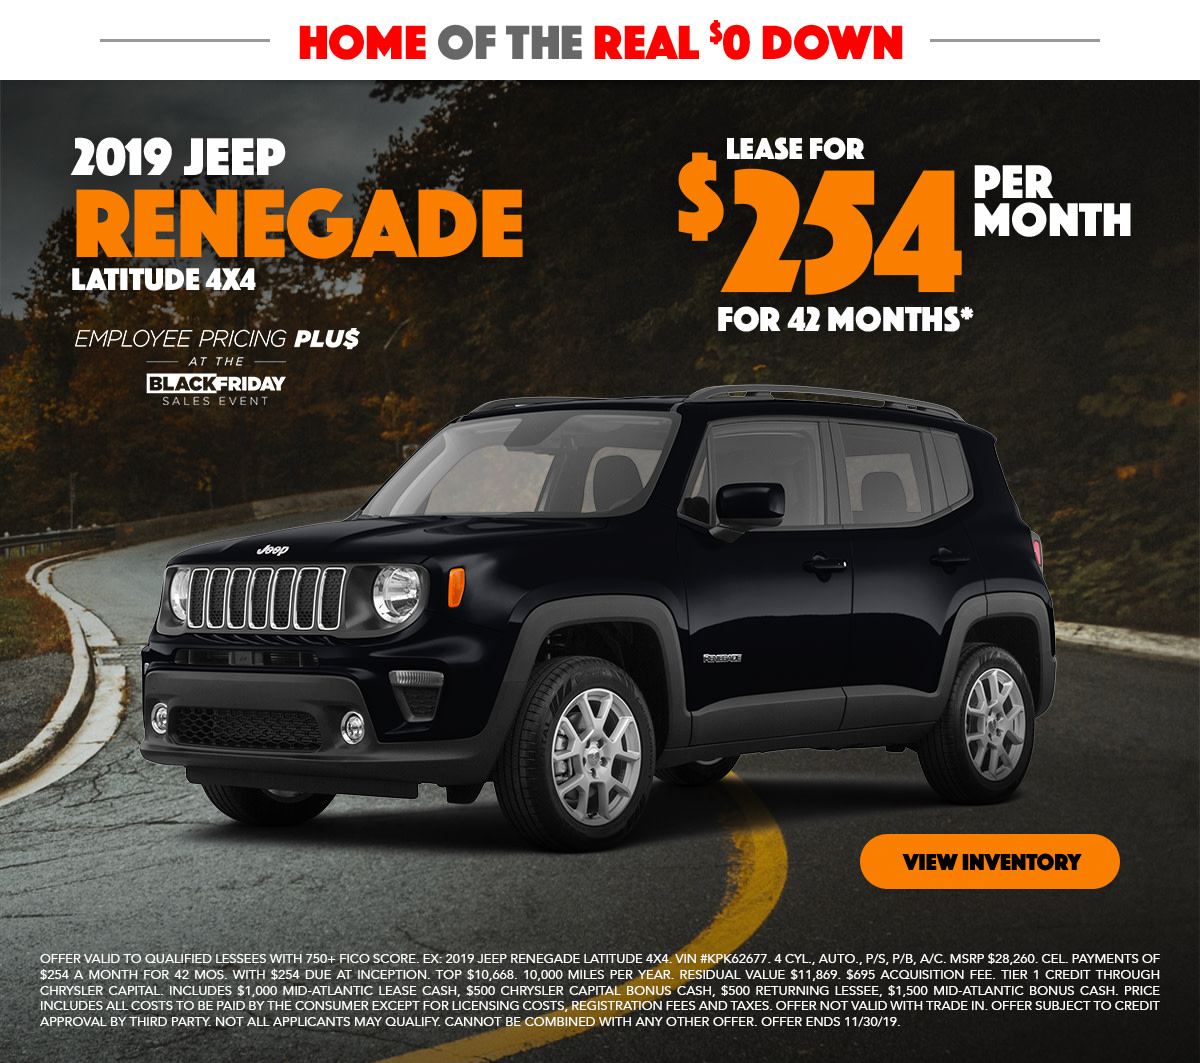 2019 Jeep Renegade Lease Special